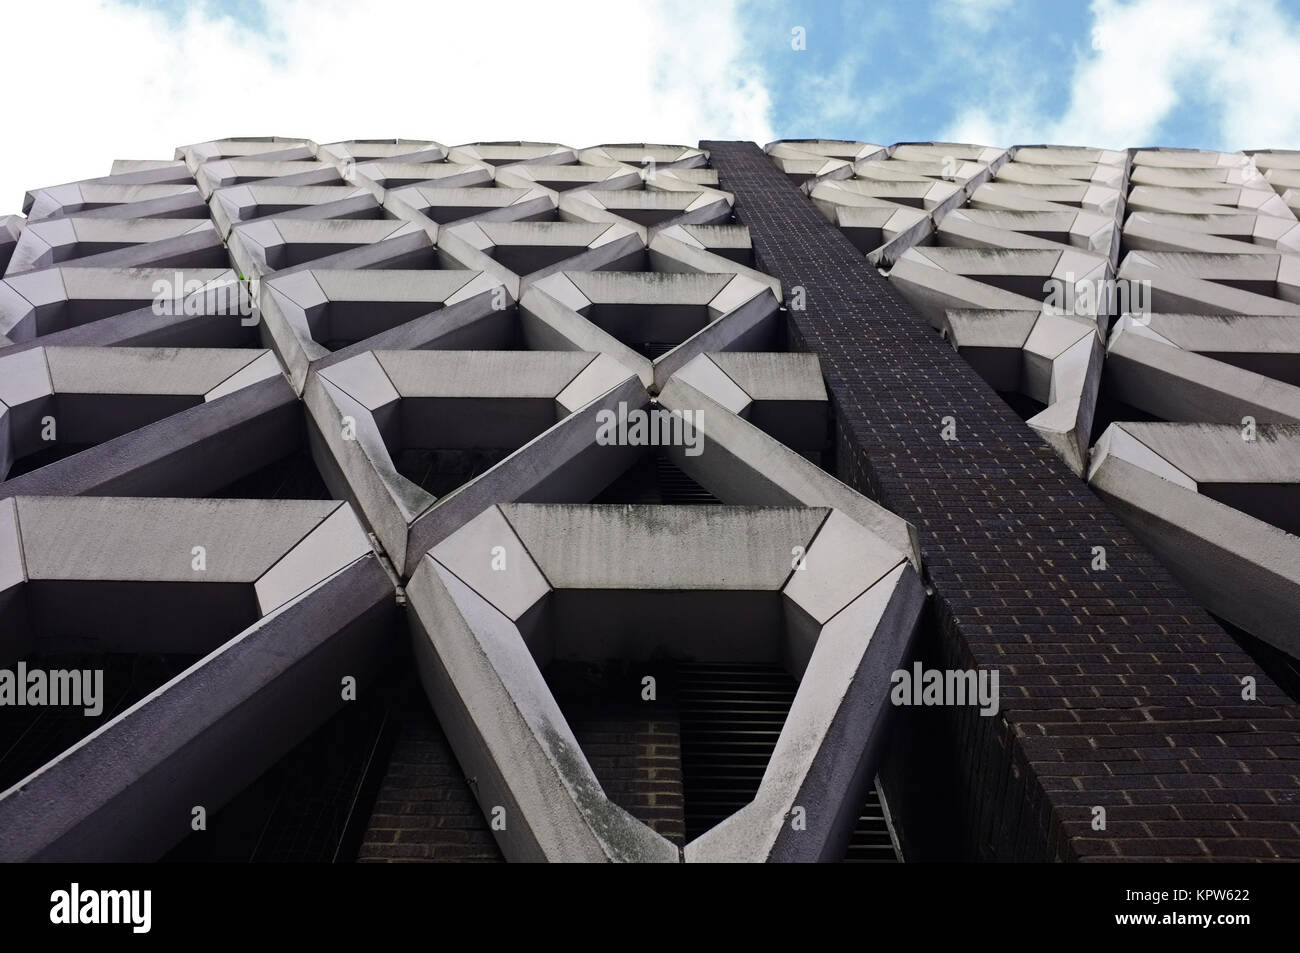 Welbeck Street car park, near Oxford Street, central London, United Kingdom - Stock Image